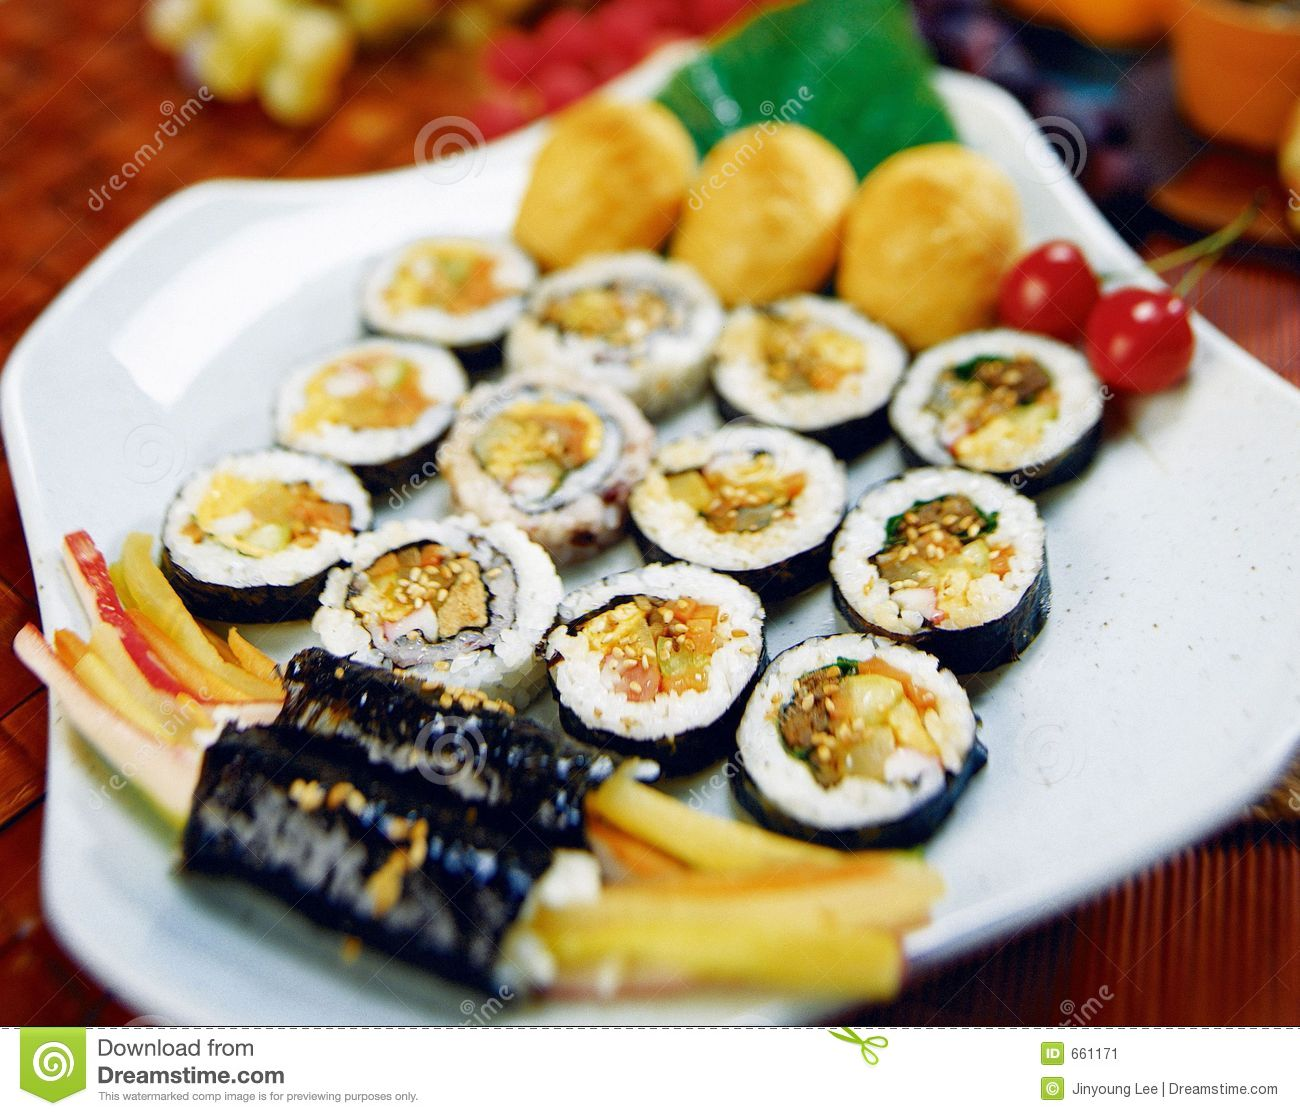 Korean Food Stock Image - Image: 661171